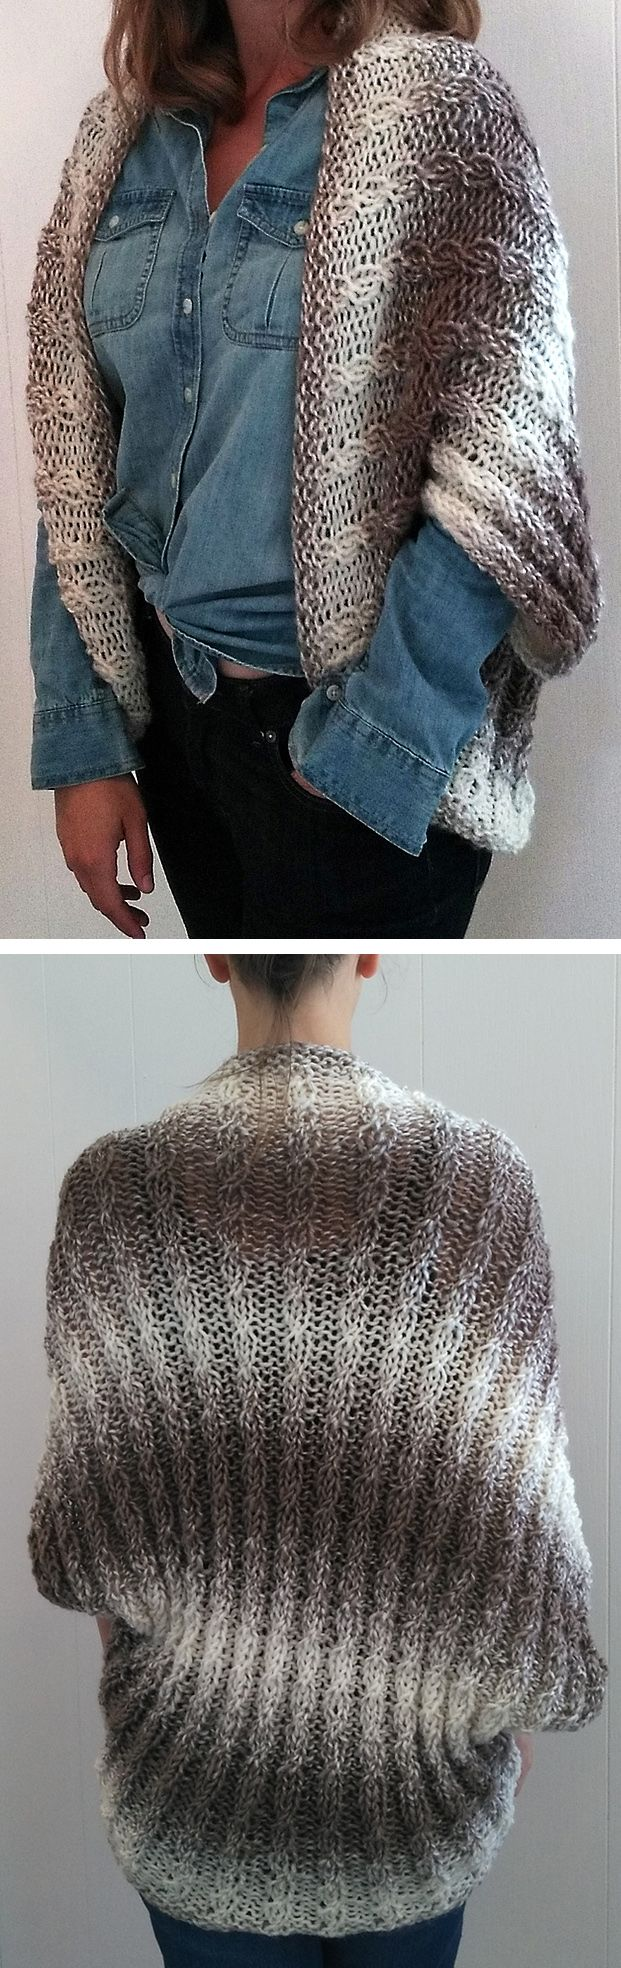 Free Knitting Pattern for Island Wrap - This cocoon ...